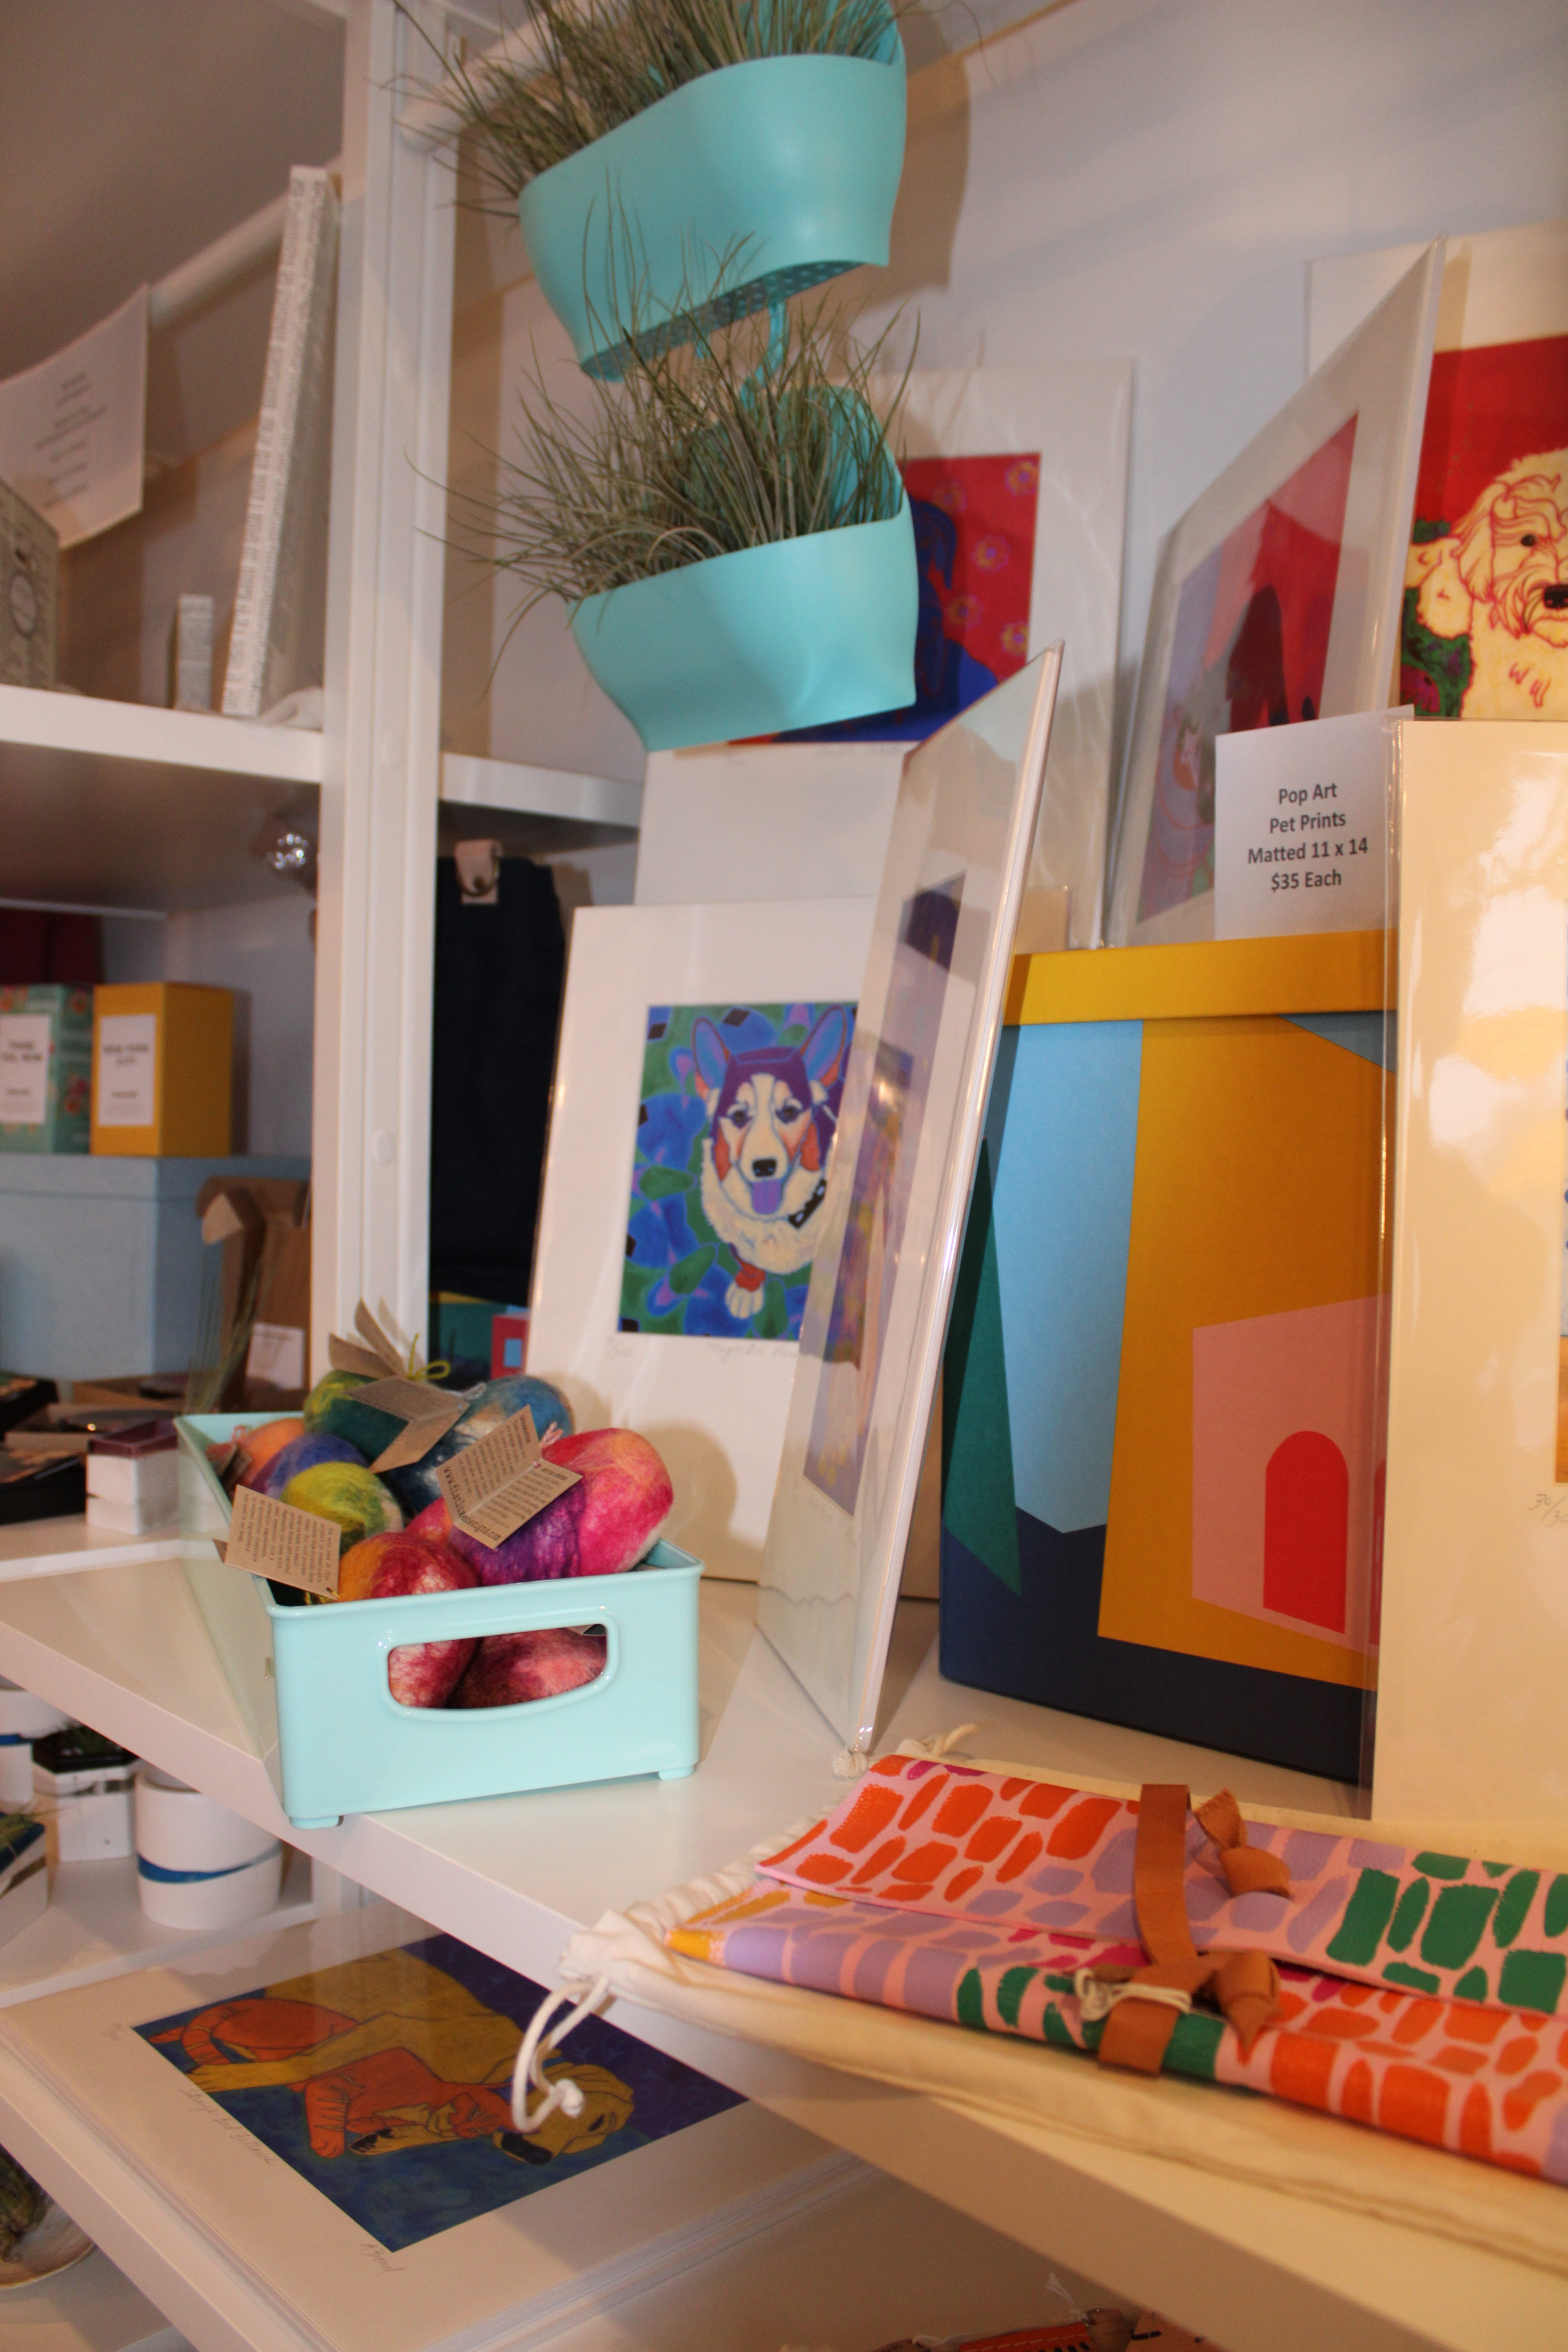 Art Thou Meow is located at 216 Mill Road in Westhampton Beach.